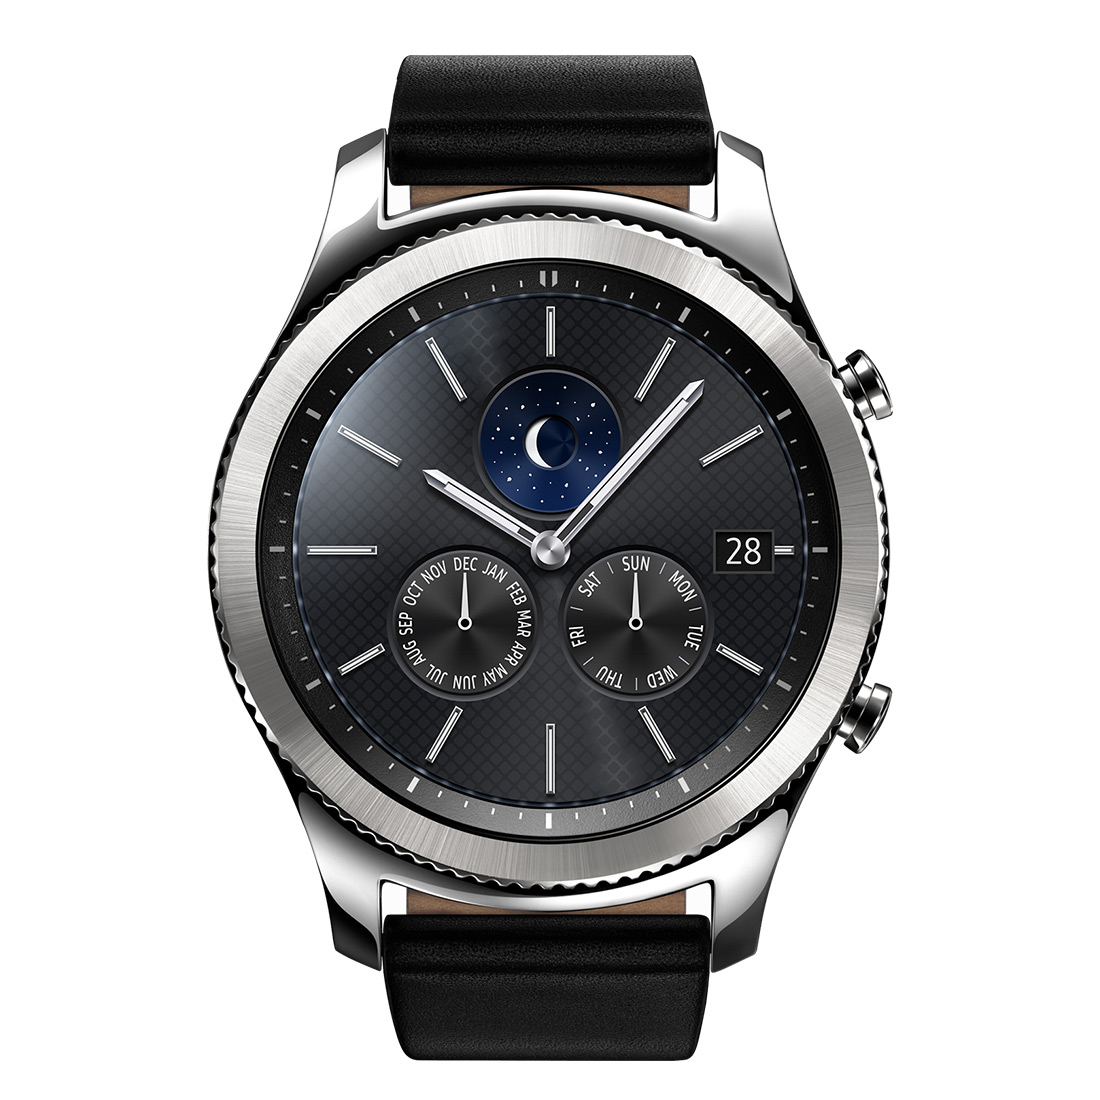 Samsung Announces the Gear S3 Classic and Gear S3 Frontier ...